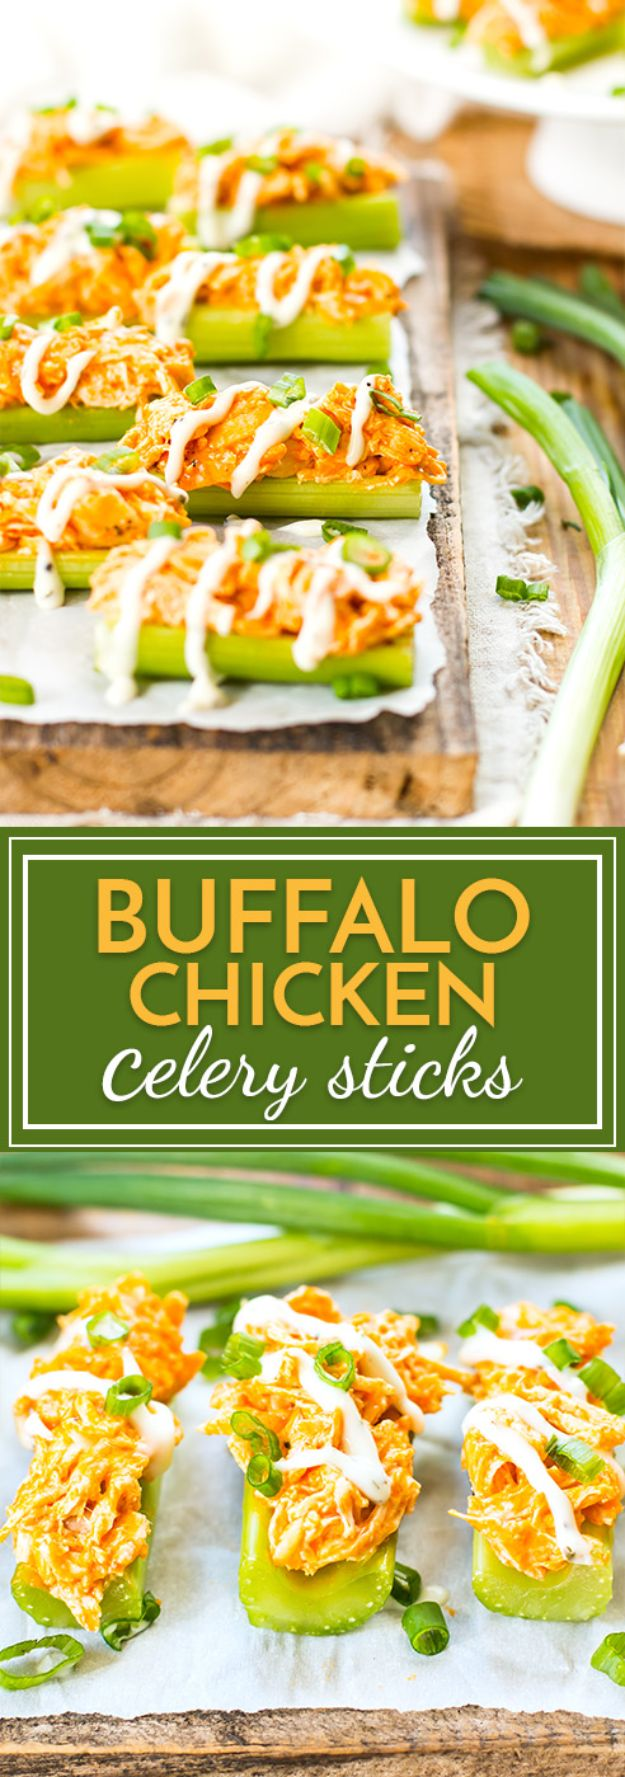 Gluten Free Appetizers - Buffalo Chicken Celery Sticks - Easy Flourless and Glutenfree Snacks, Wraps, Finger Foods and Snack Recipes - Recipe Ideas for Gluten Free Diets - Spinach and Cheese Dips, Vegetable Spreads, Sushi rolls, Quick Grill Foods, Party Trays, Dessert Bites, Healthy Veggie and Fruit Appetizer Tutorials #glutenfree #appetizers #appetizerrecipes #glutenfreerecipes #recipeideas #diyjoy http://diyjoy.com/gluten-free-appetizers